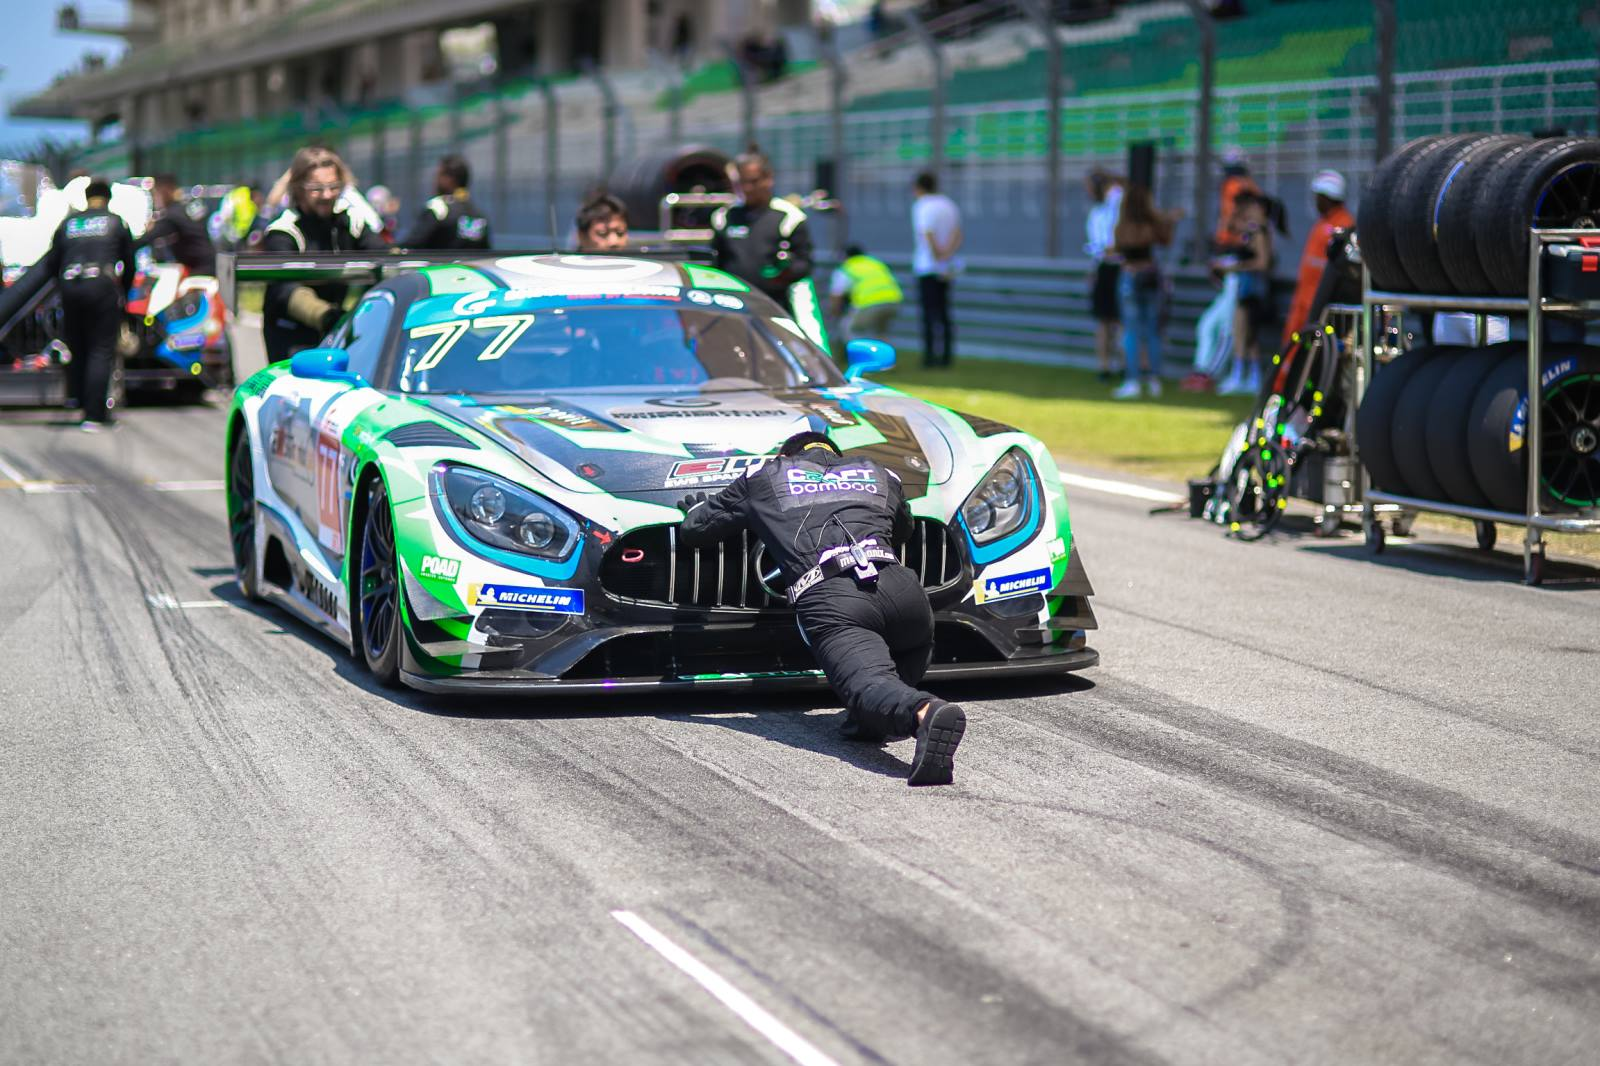 Craft-Bamboo switches to Mercedes-AMG, confirms Blancpain